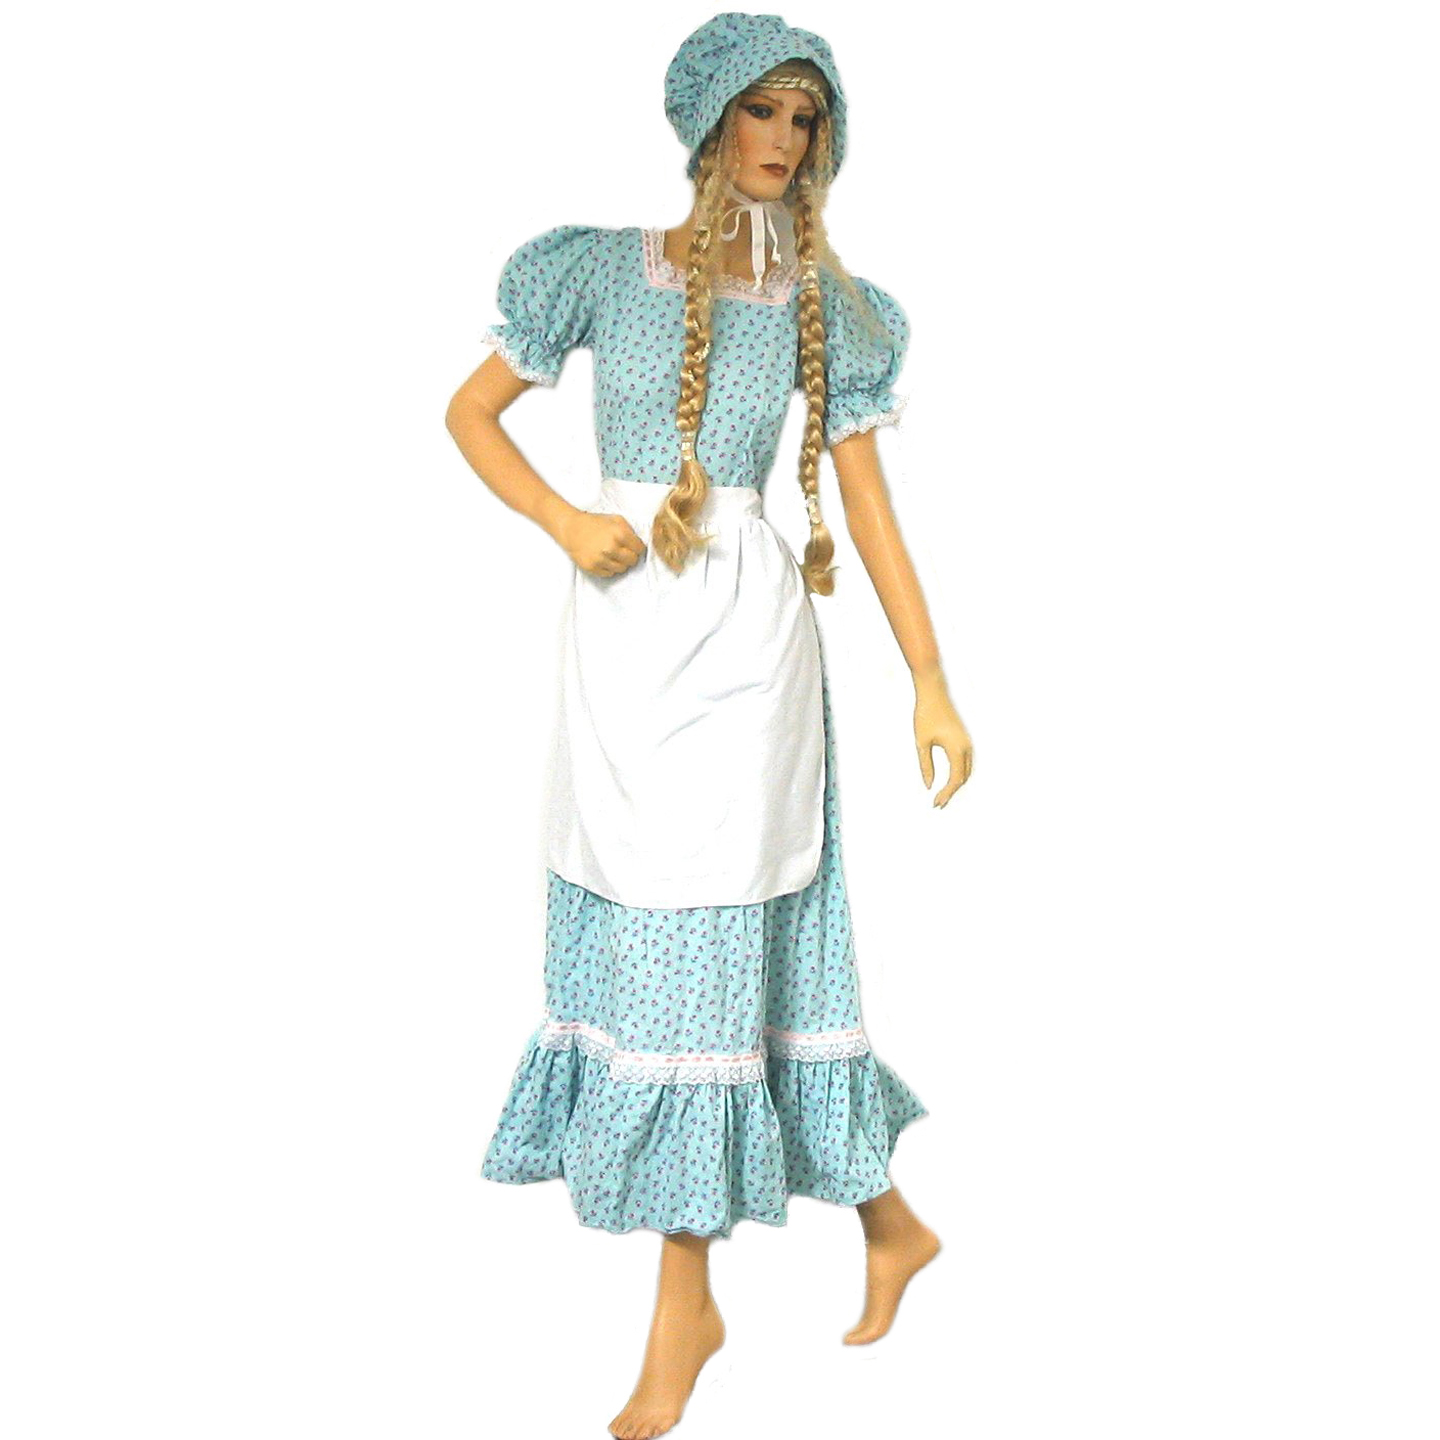 Calico Old Fashioned Dresses – 9 colors – Beauty and the Beast ...